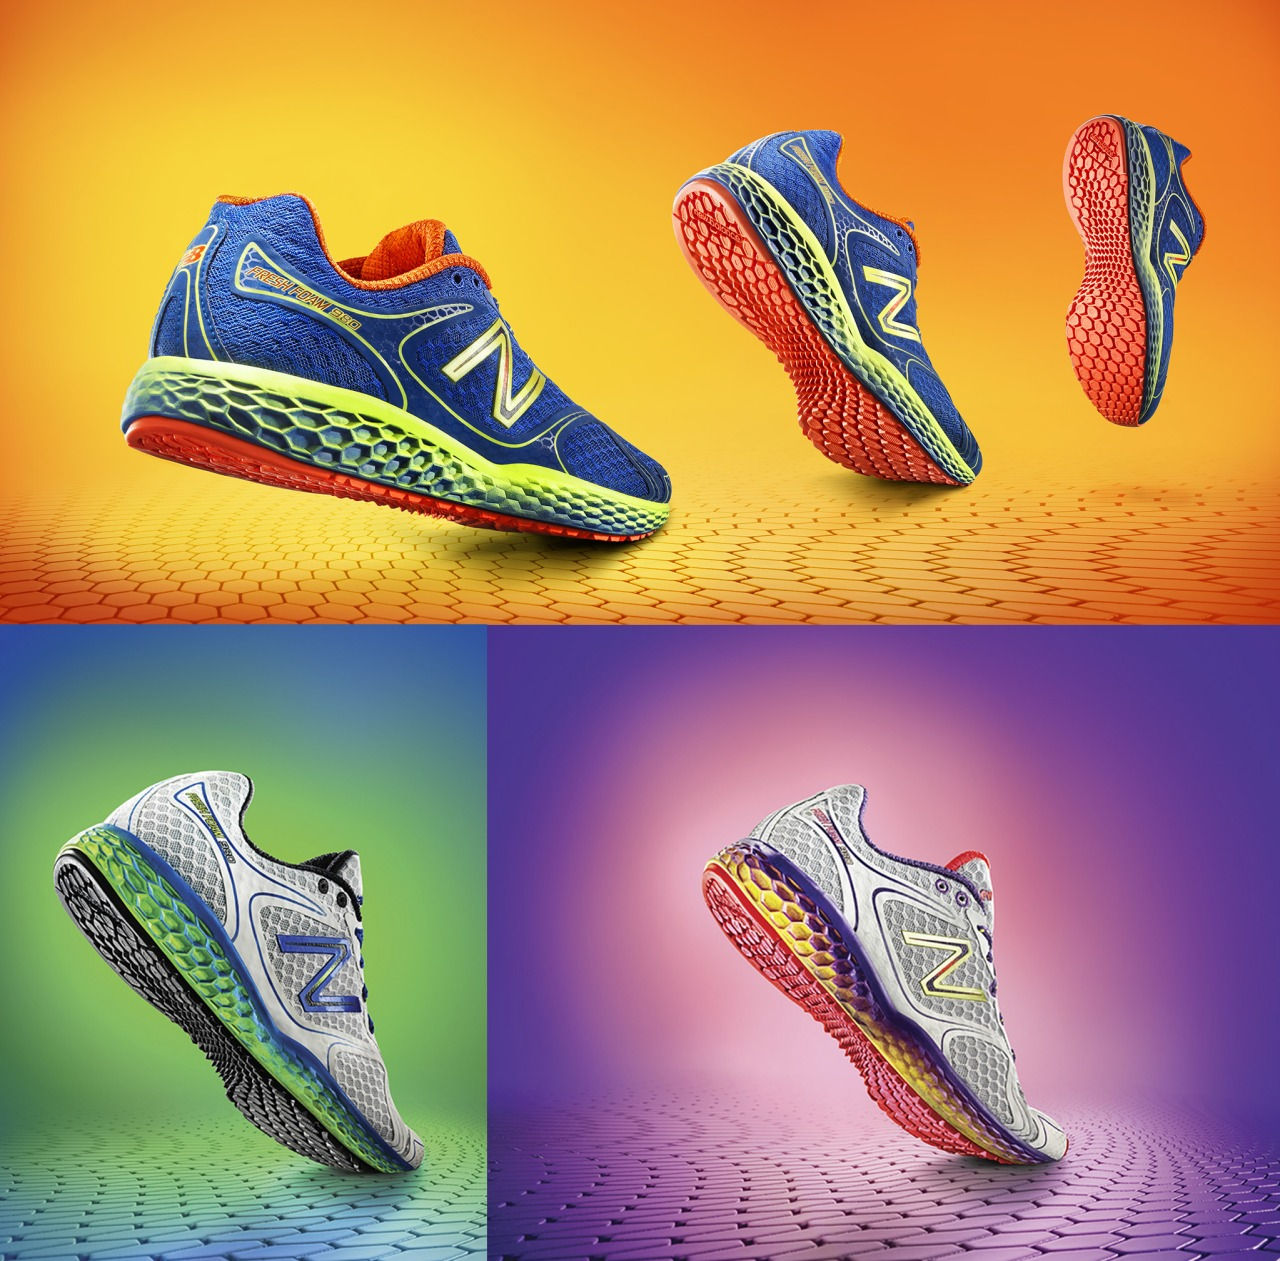 End of Last year I shot the  New Balance Fresh Foam running shoes for Arnold World Wide, they are out in the wild now, keep an eye out.